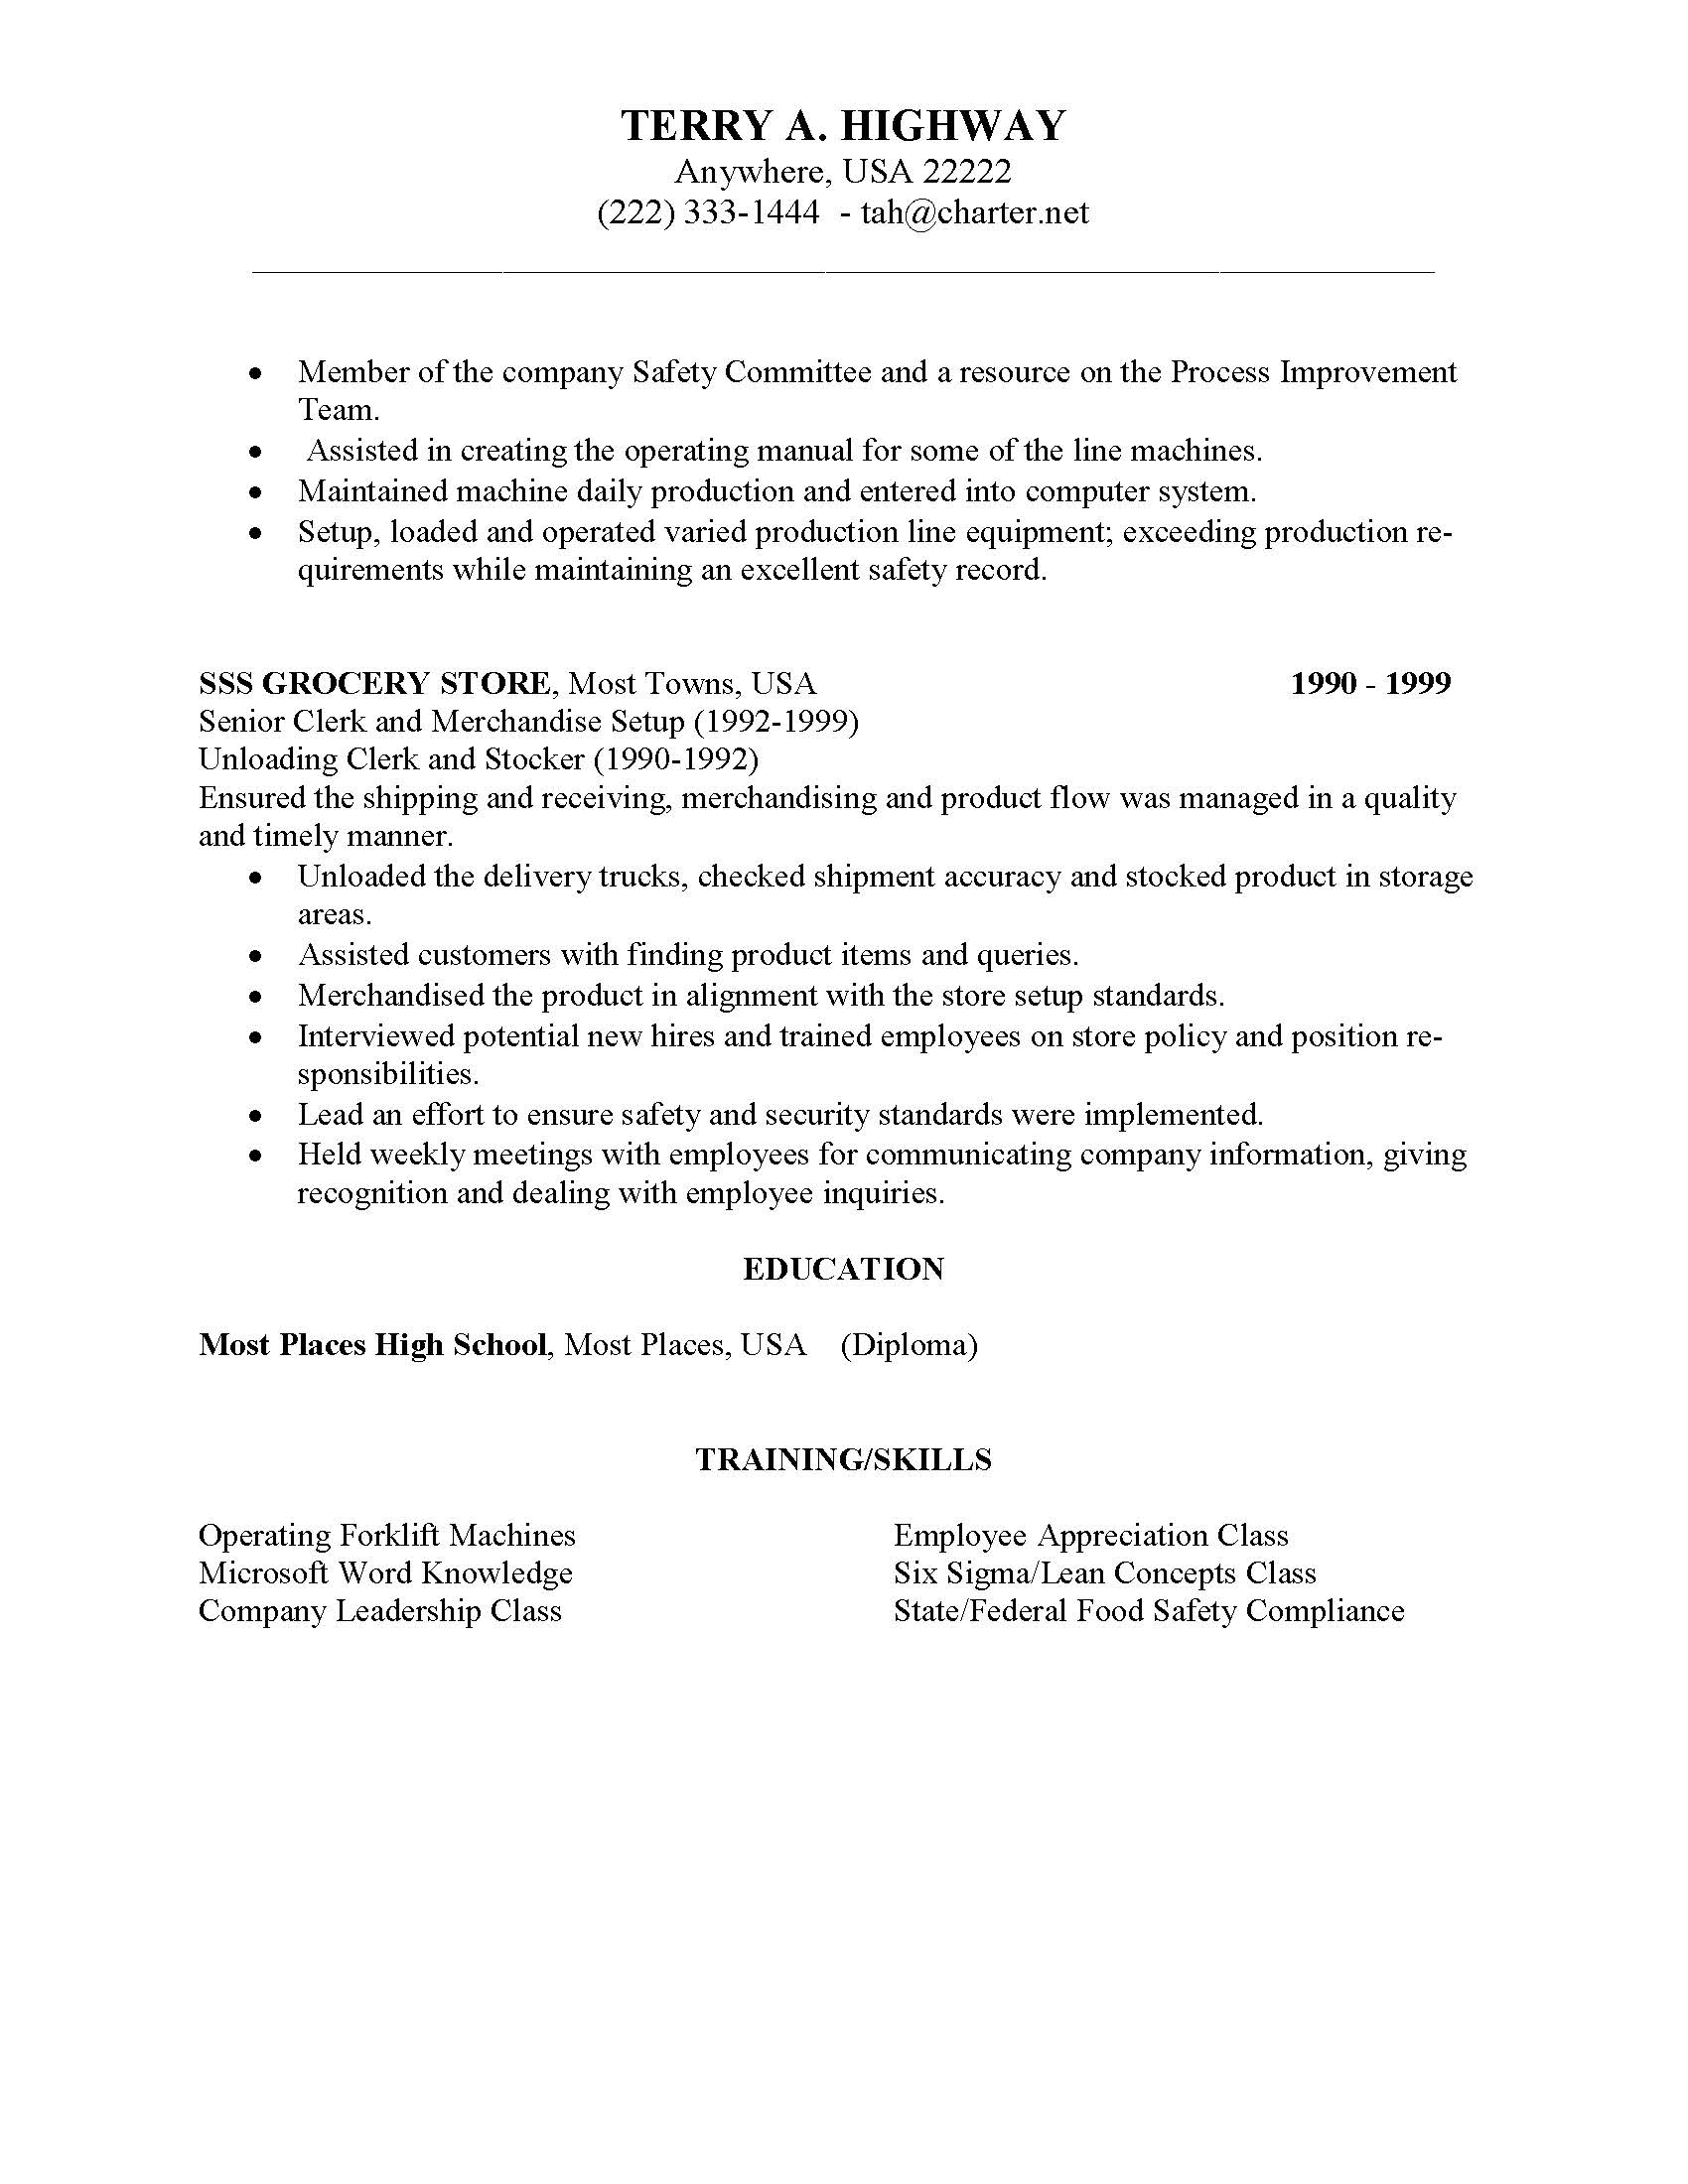 Terry A. Highway Resume_Page_2